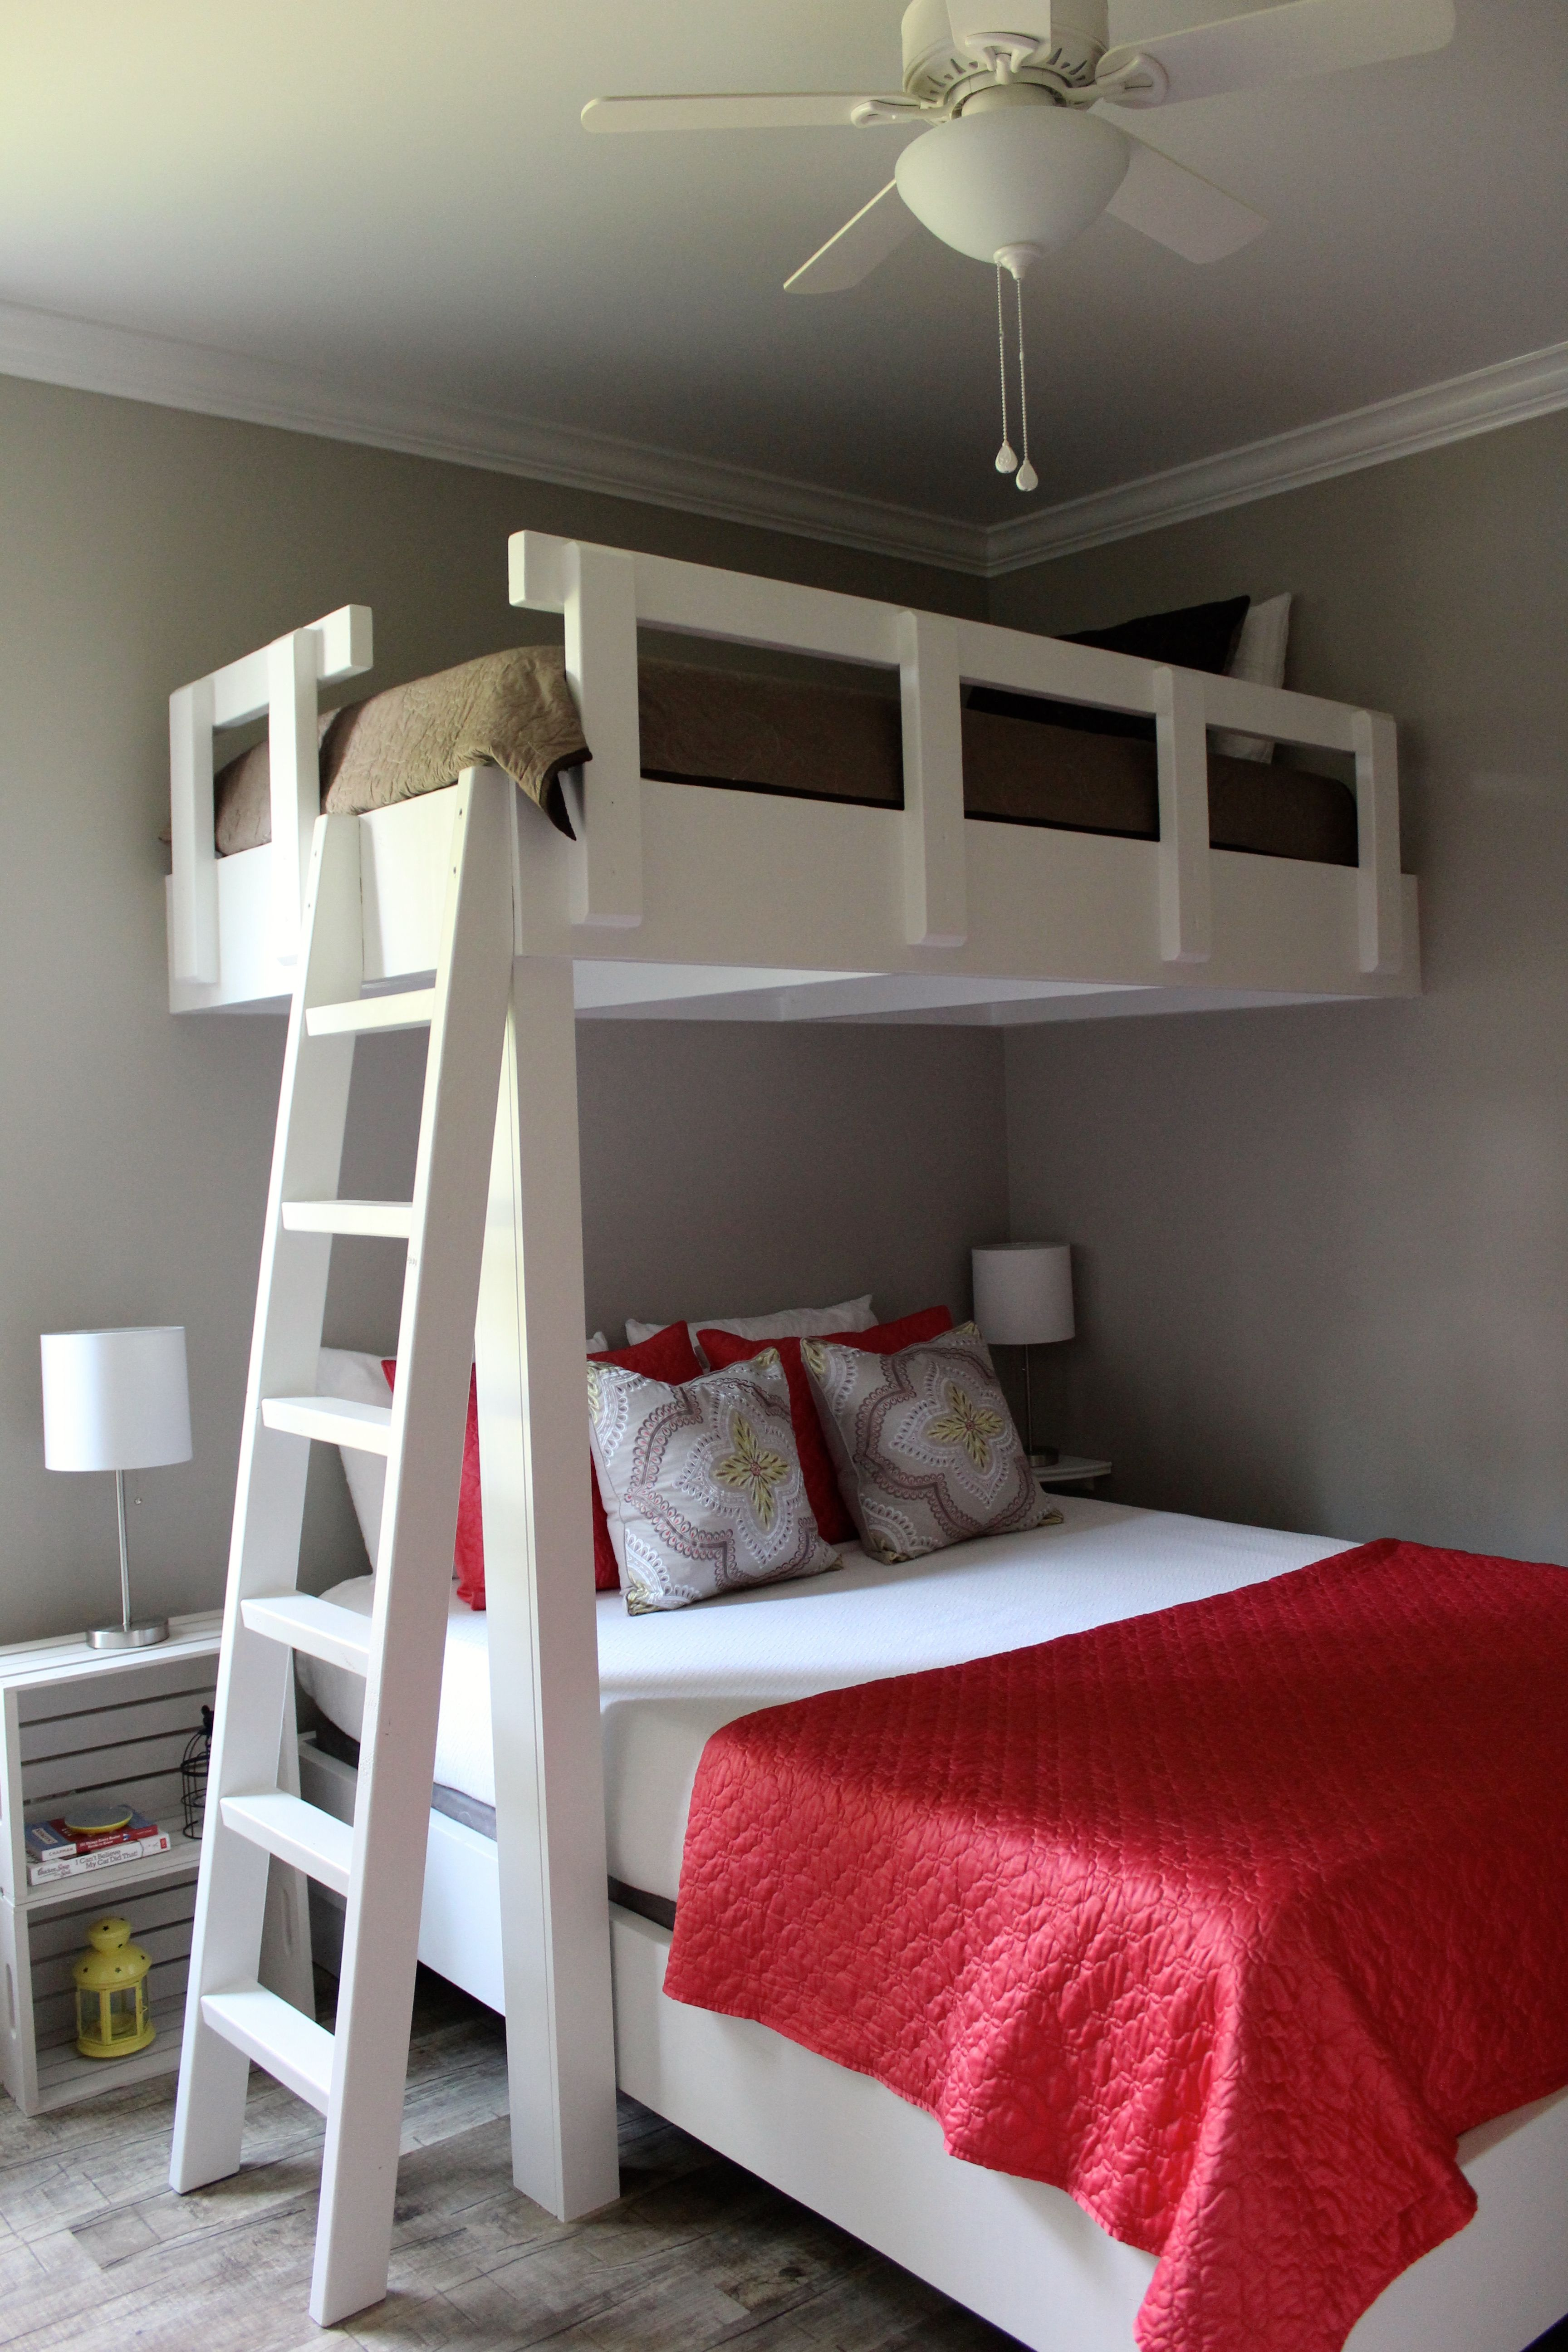 Bunk Beds Twin Over Queen In Guest Room At Lake